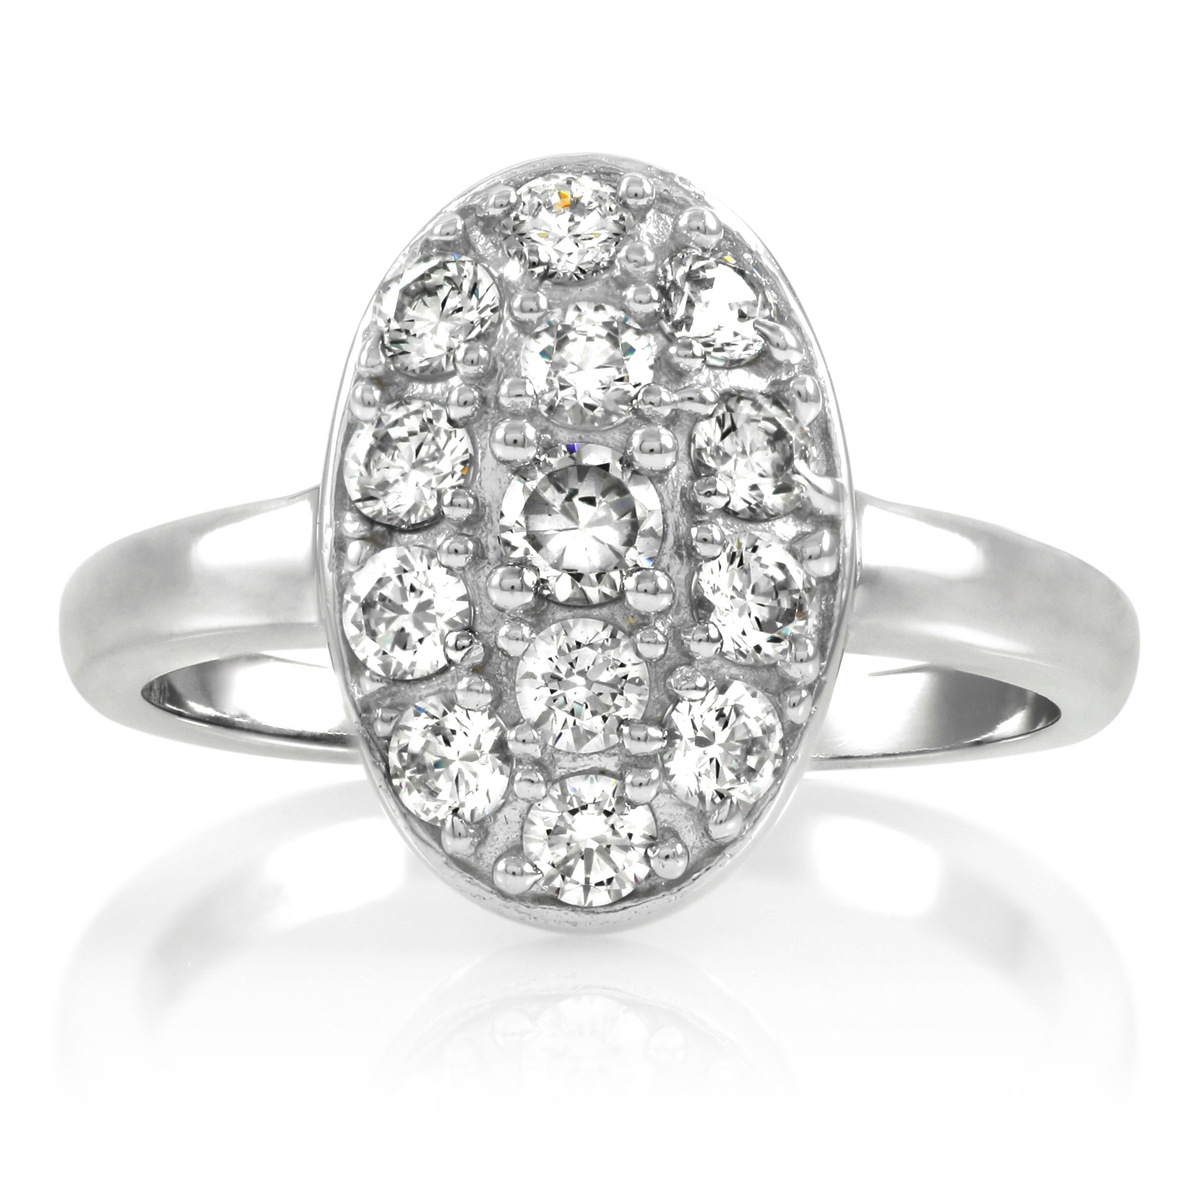 Carleen s Vintage Oval Cubic Zirconia Pave Engagement Ring